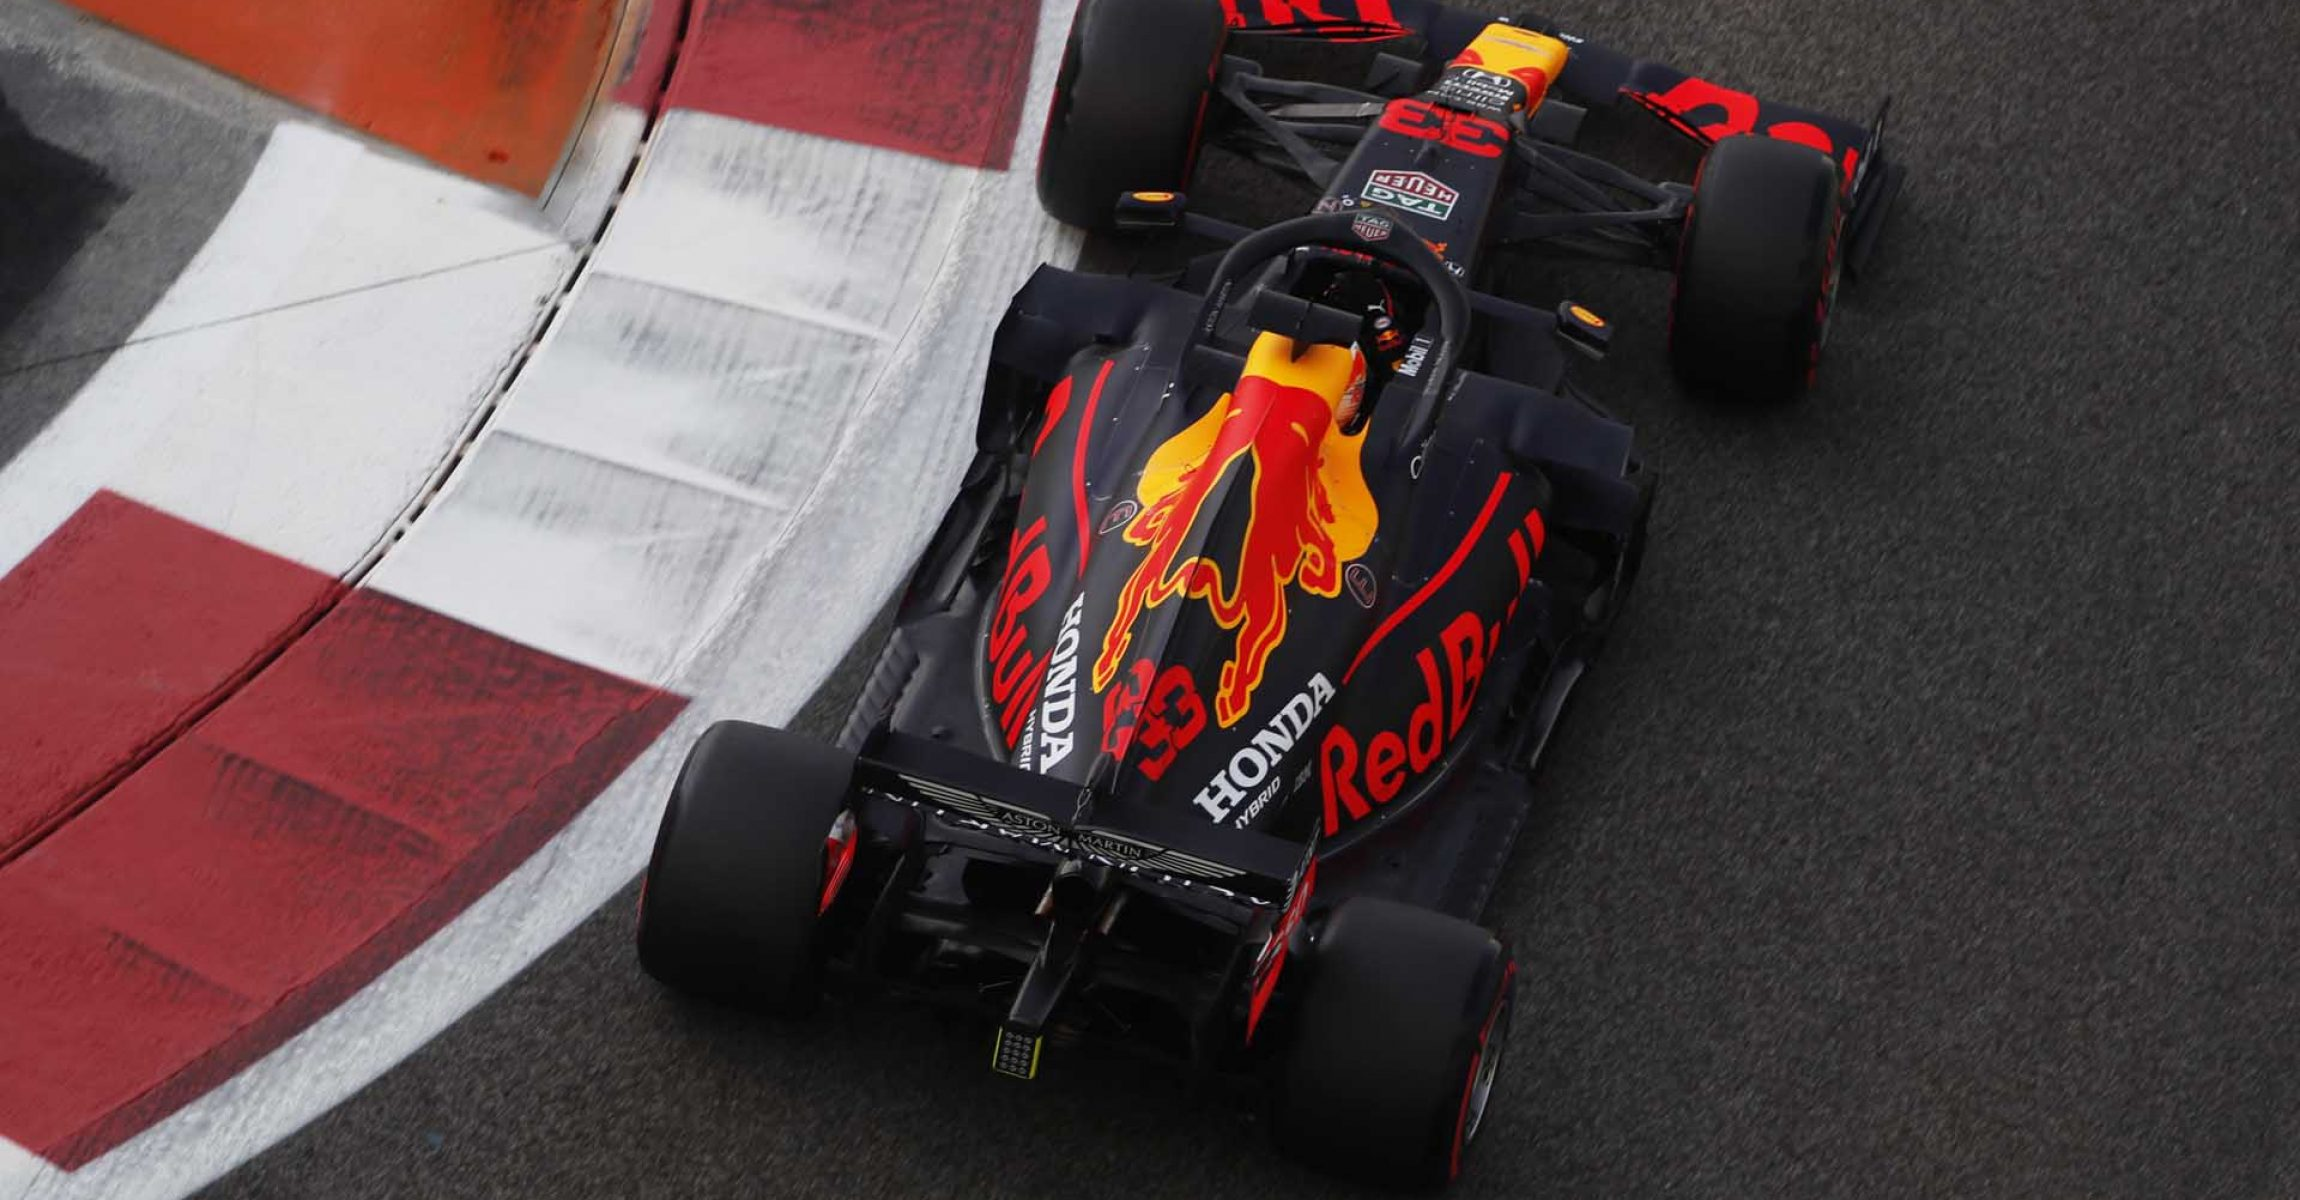 ABU DHABI, UNITED ARAB EMIRATES - DECEMBER 12: Max Verstappen of the Netherlands driving the (33) Aston Martin Red Bull Racing RB16 on track during final practice ahead of the F1 Grand Prix of Abu Dhabi at Yas Marina Circuit on December 12, 2020 in Abu Dhabi, United Arab Emirates. (Photo by Hamad I Mohammed - Pool/Getty Images)